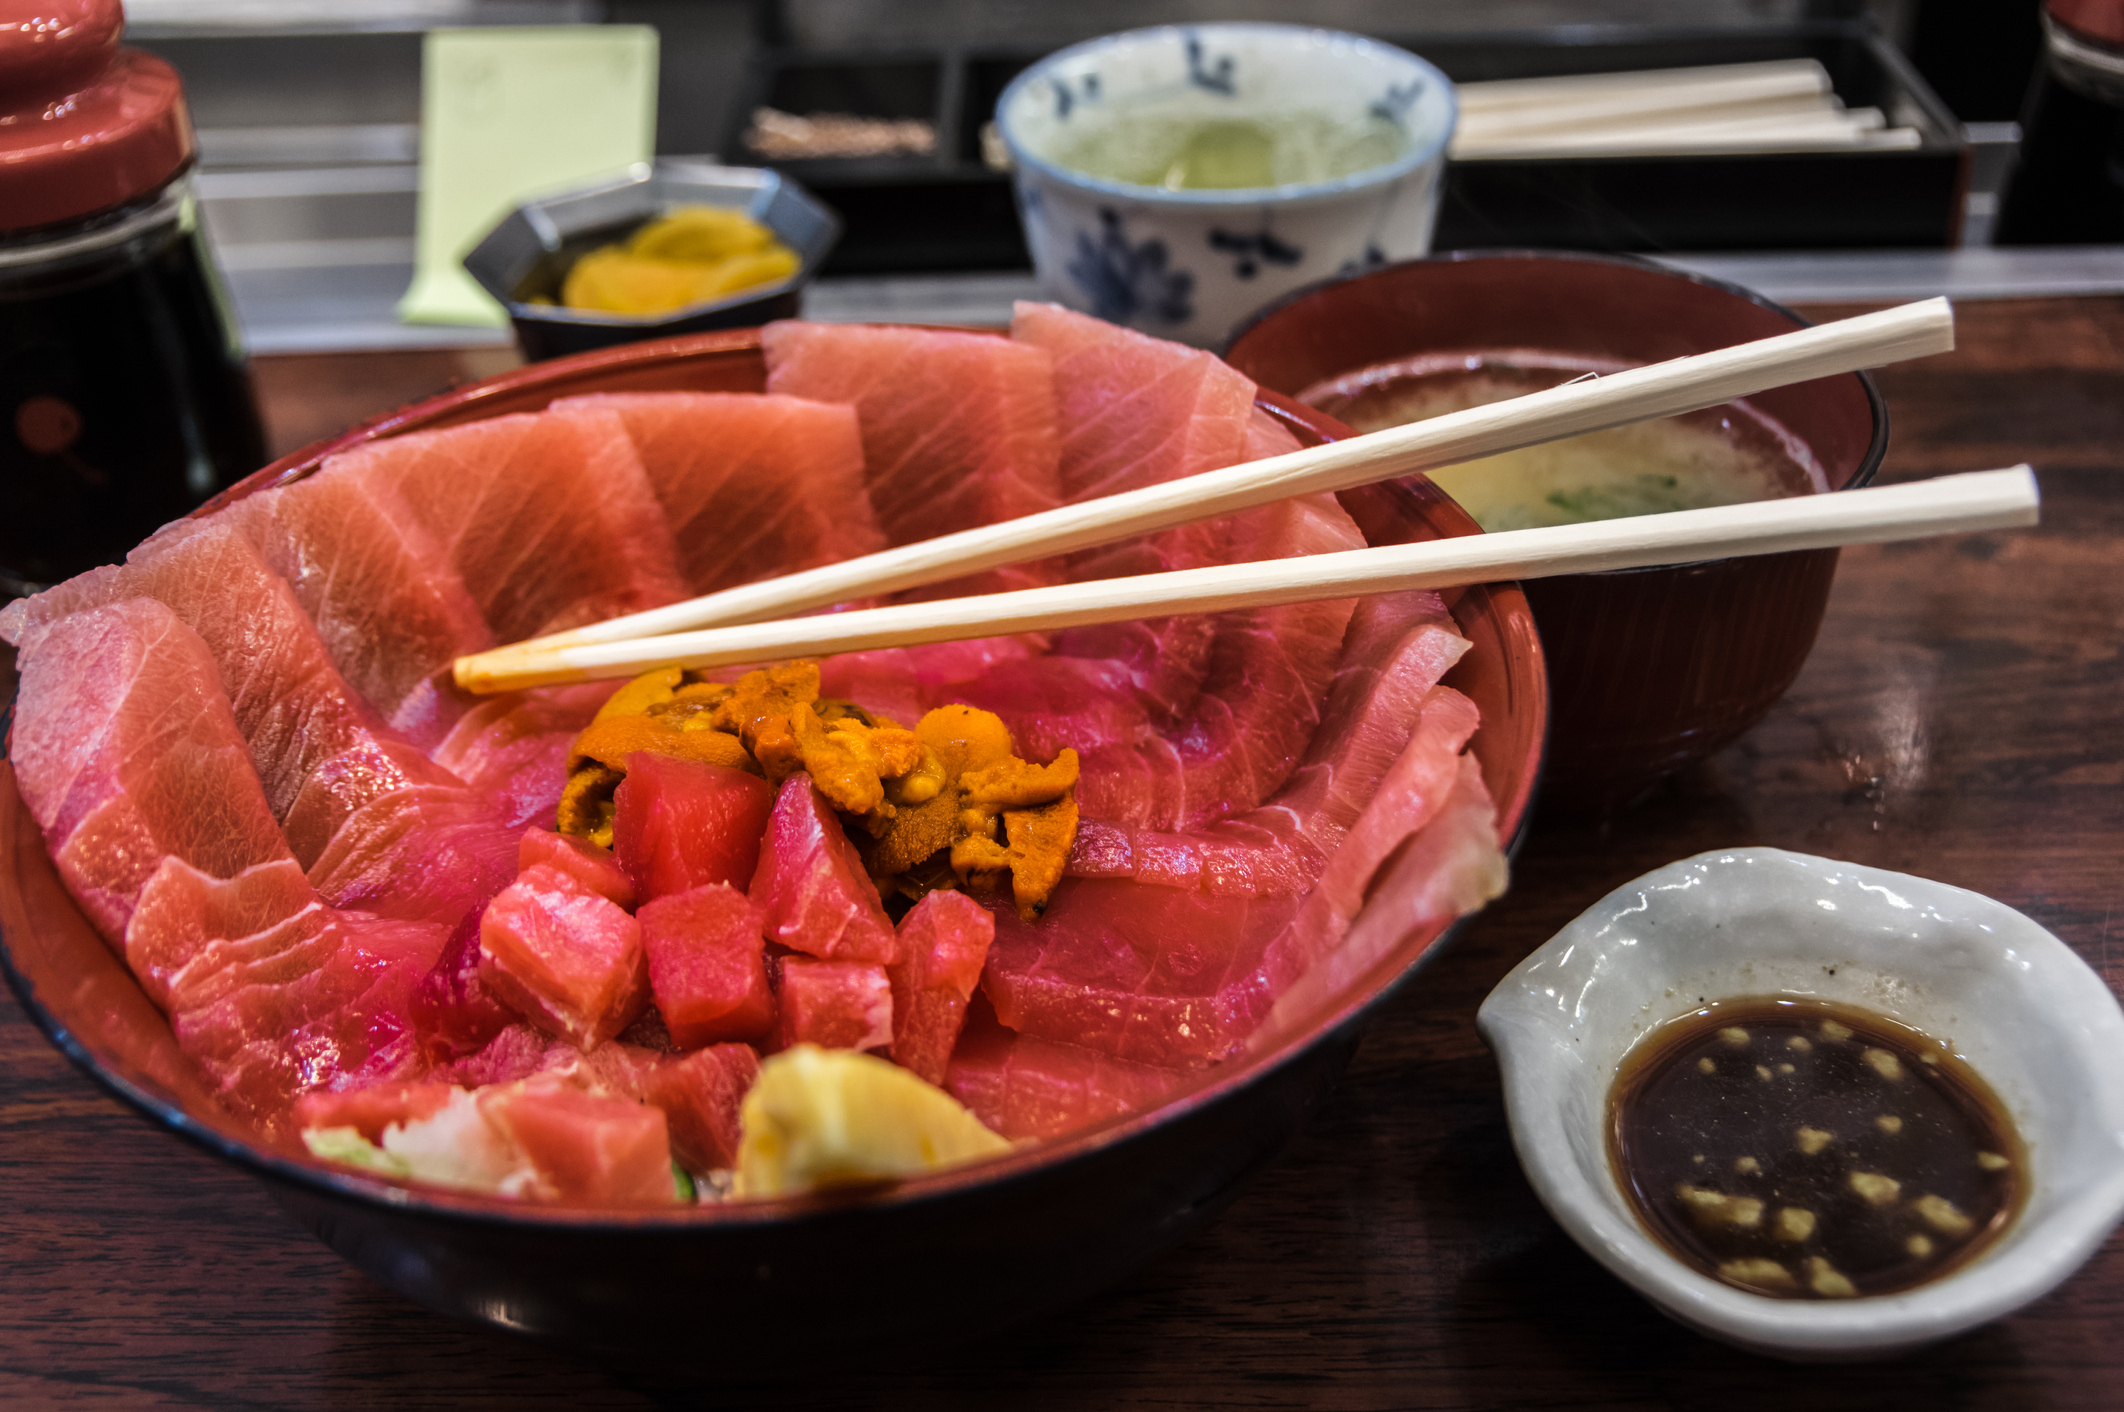 A bowl of raw tuna is served at a Japanese restaurant with miso soup and soy sauce.